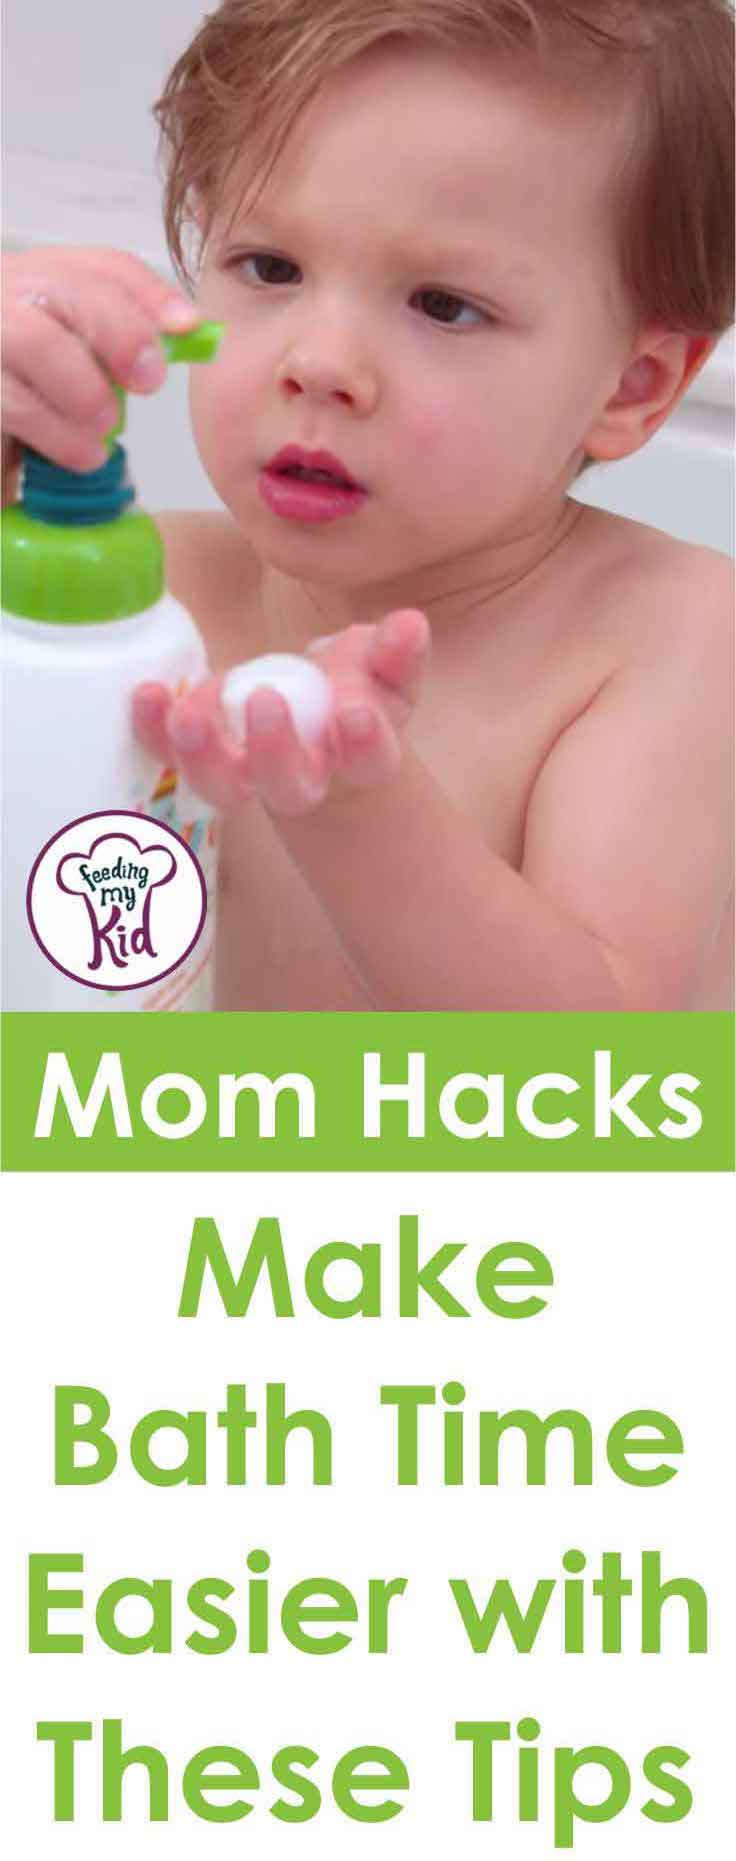 Bath time can be a struggle. Check out these mom hacks from What's Up Moms that will make bath time so much less stressful.